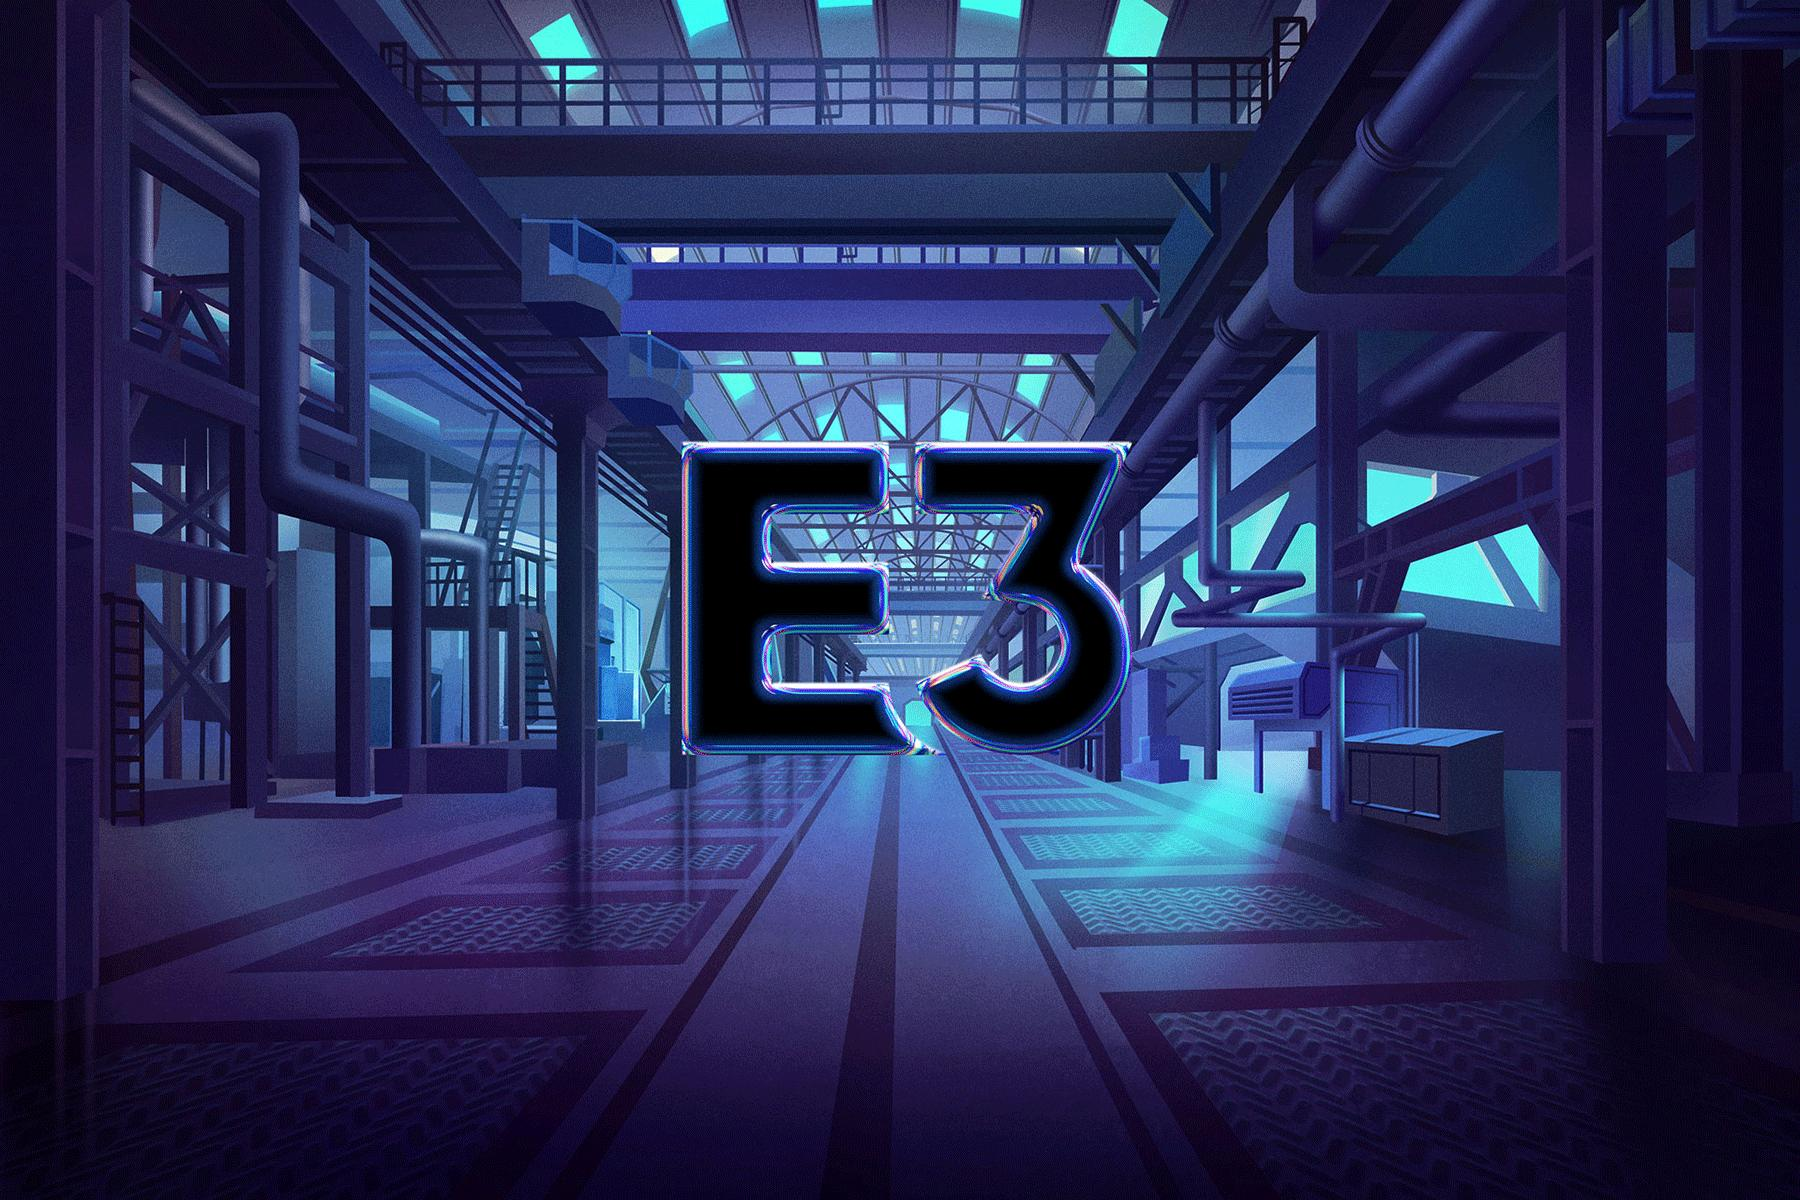 An animation showing screenshots of closed captions from E3's livestream popping up one after another against a backdrop featuring the E3 logo in a graphically rendered factory-like space.